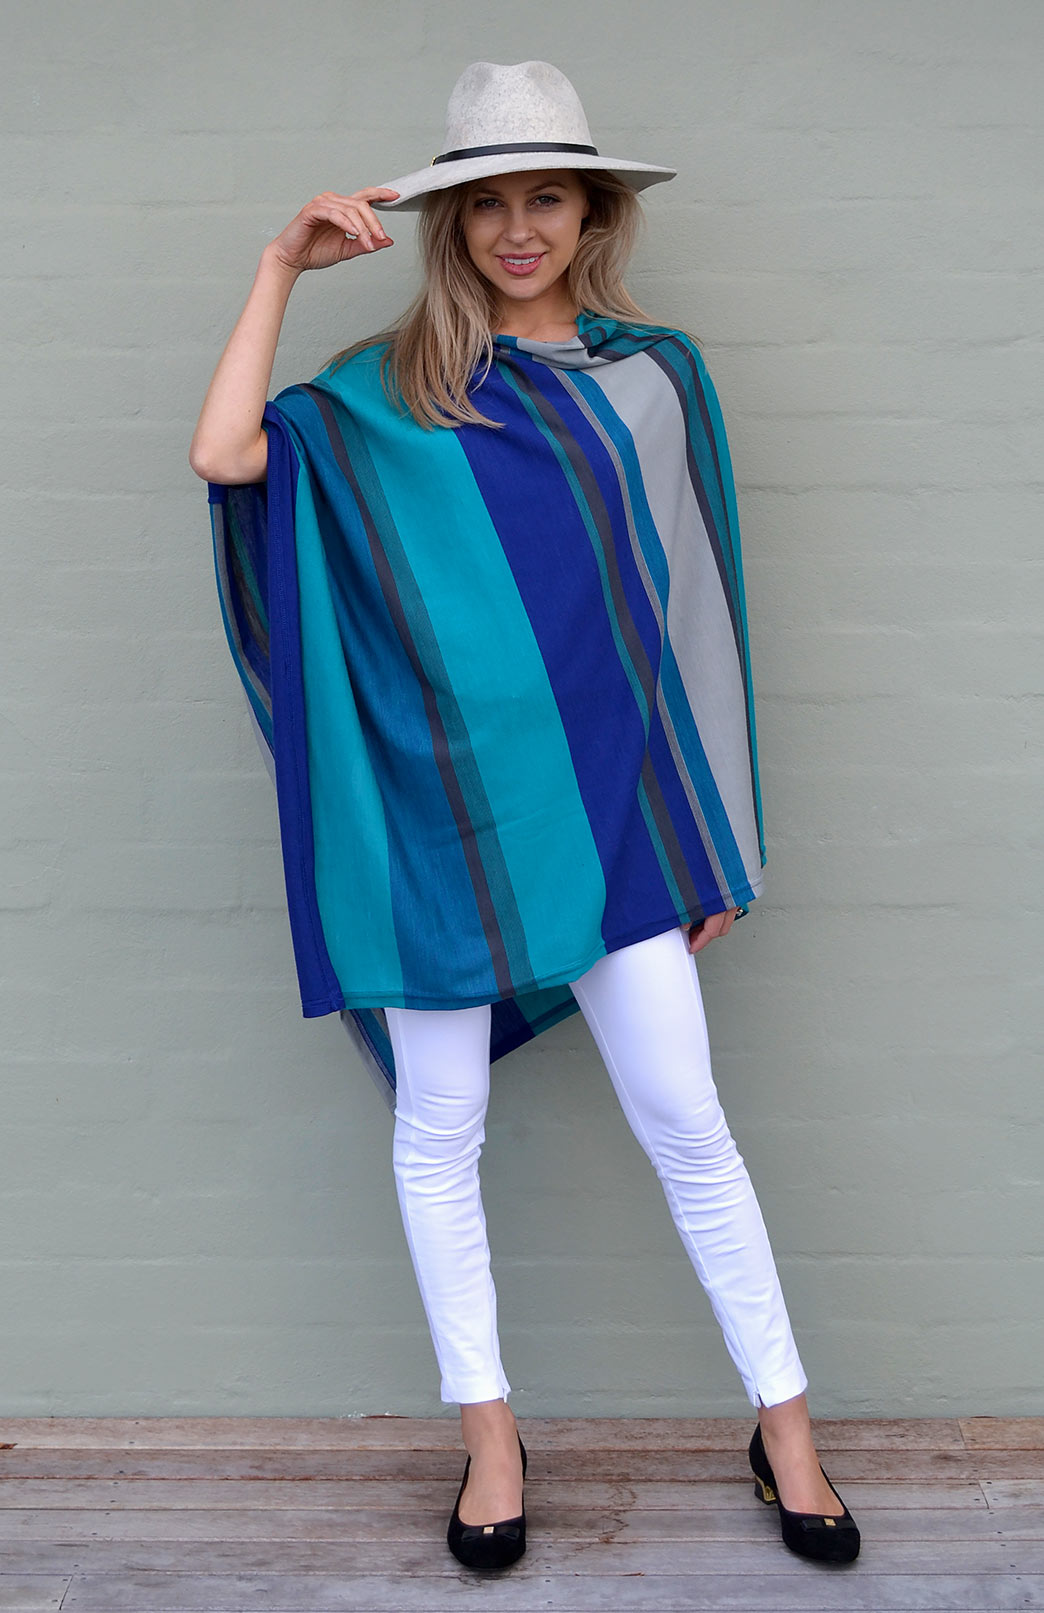 Oversized Poncho - Striped & Patterned - Women's Blue Multi Stripe Oversized Wool Poncho - Smitten Merino Tasmania Australia